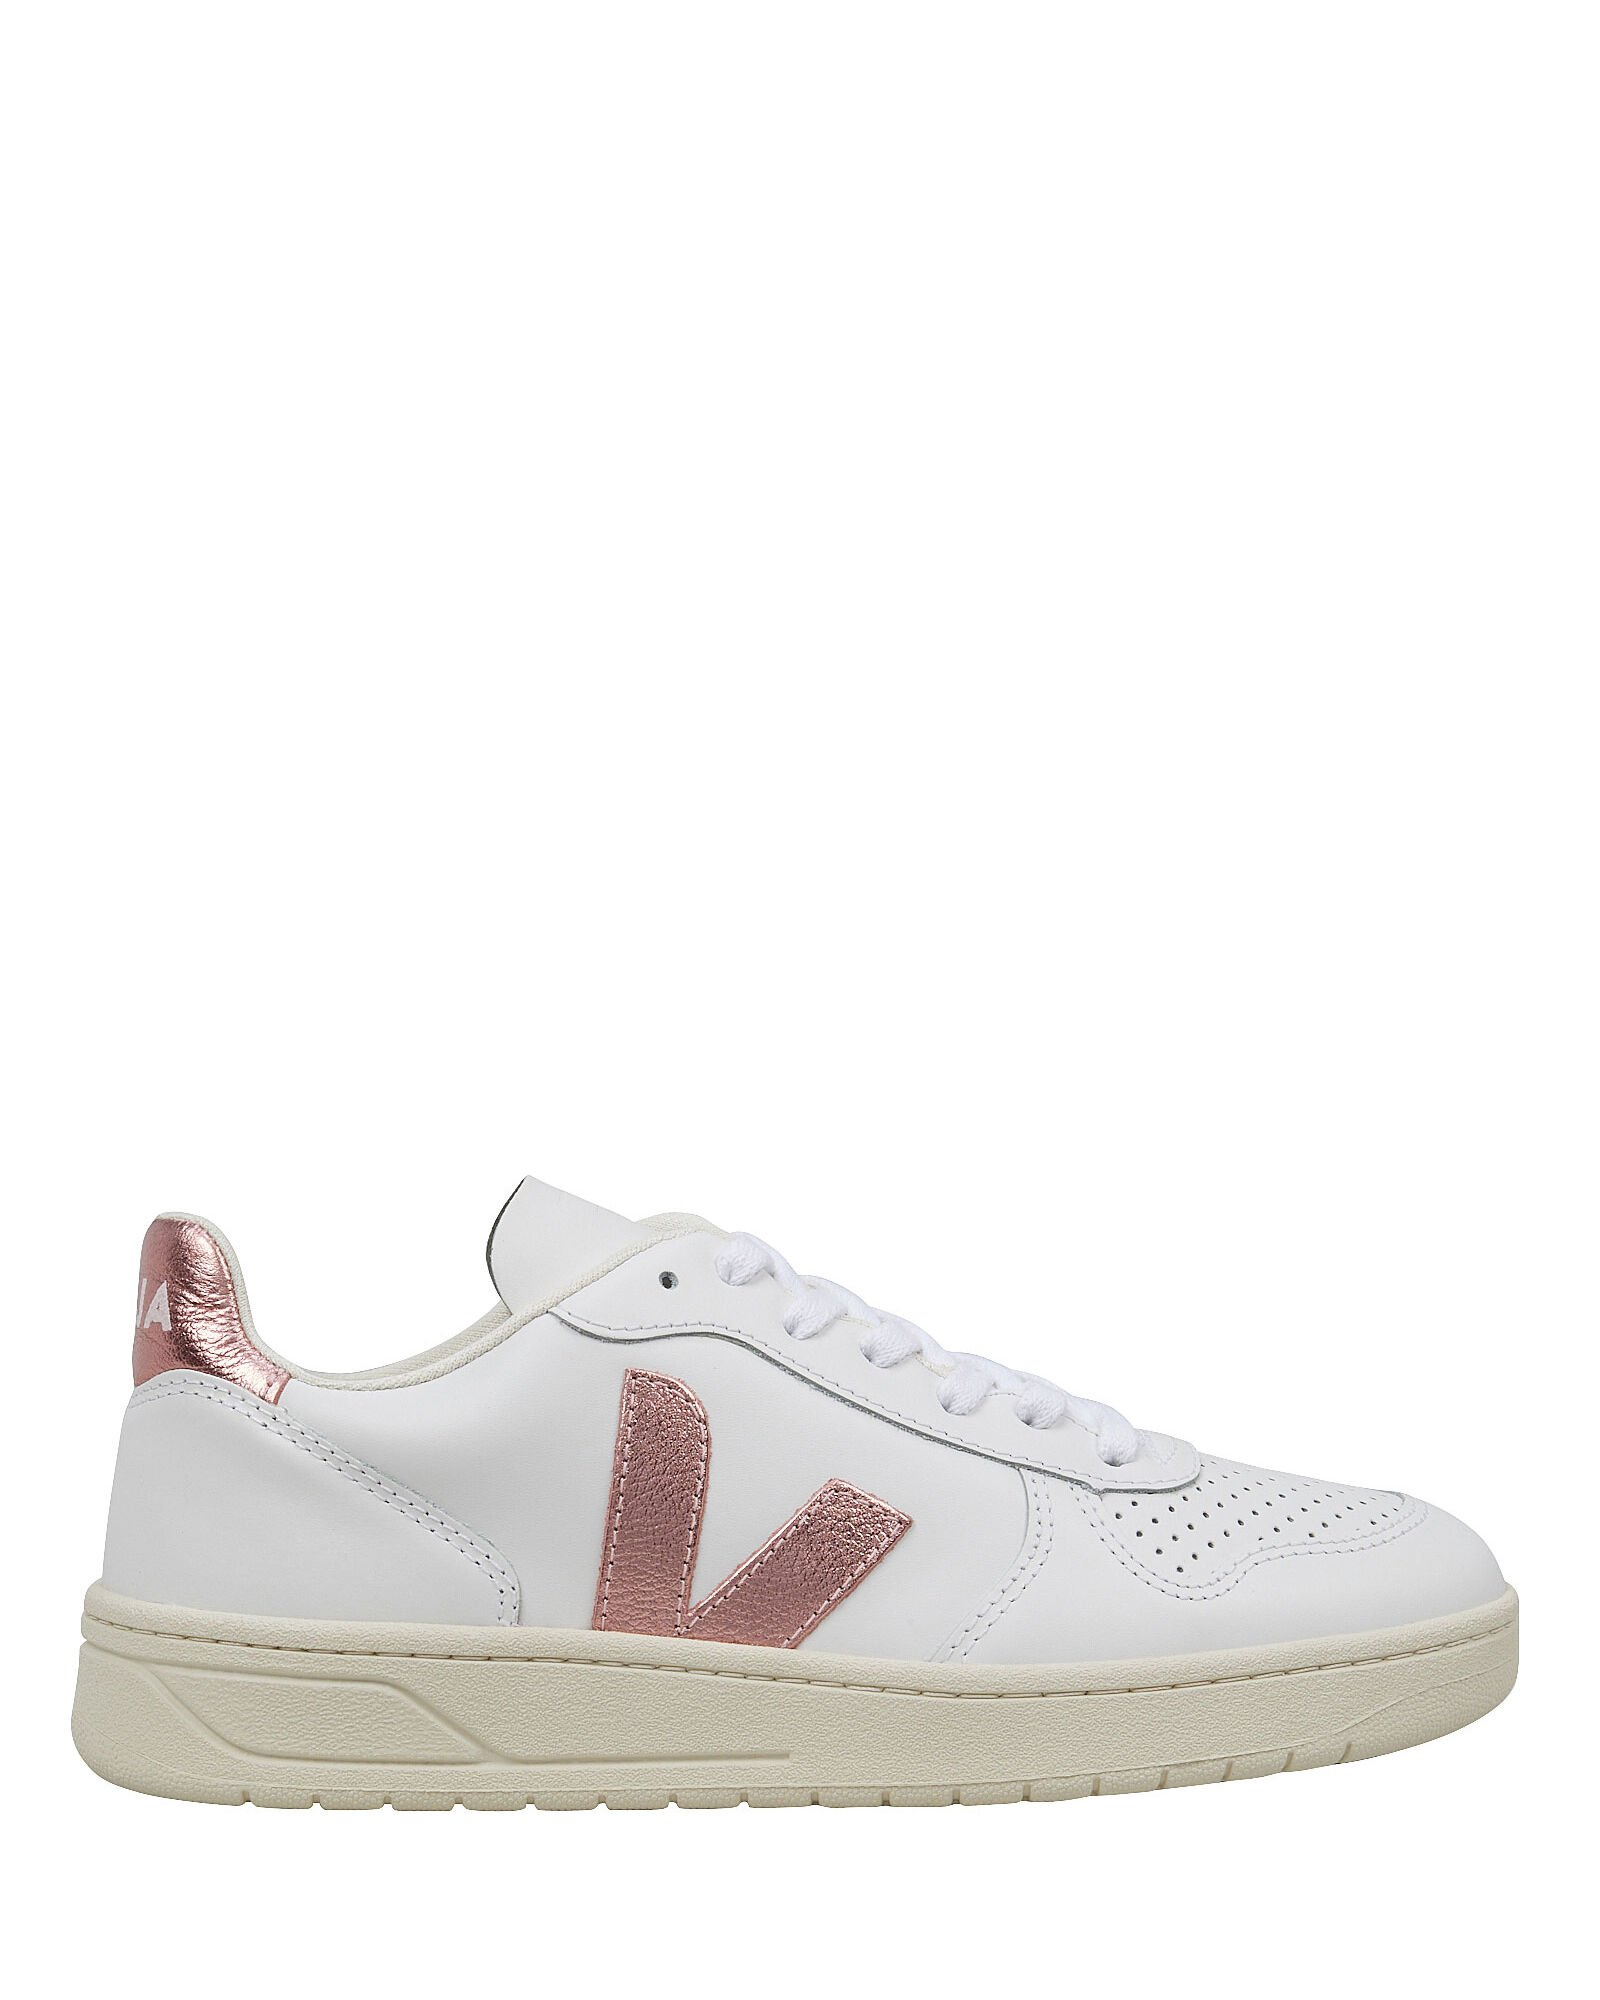 V-10 Low Top Sneakers, WHITE, hi-res